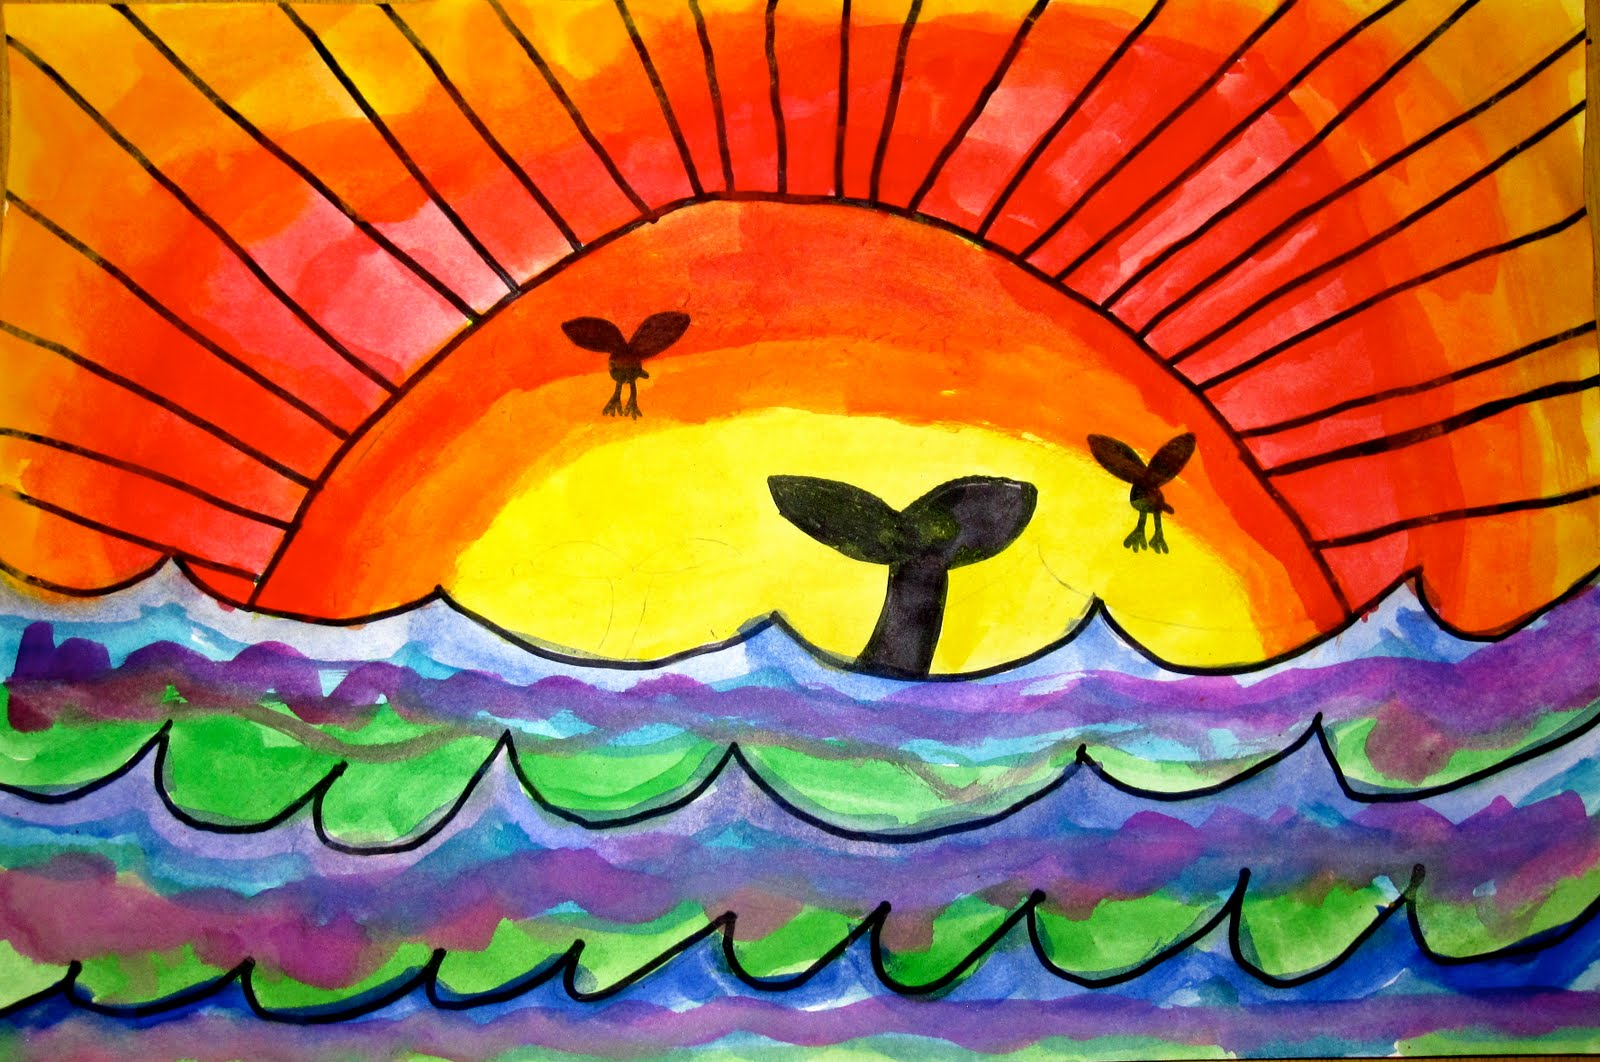 Art Explorium: Warm/Cool Sunsets